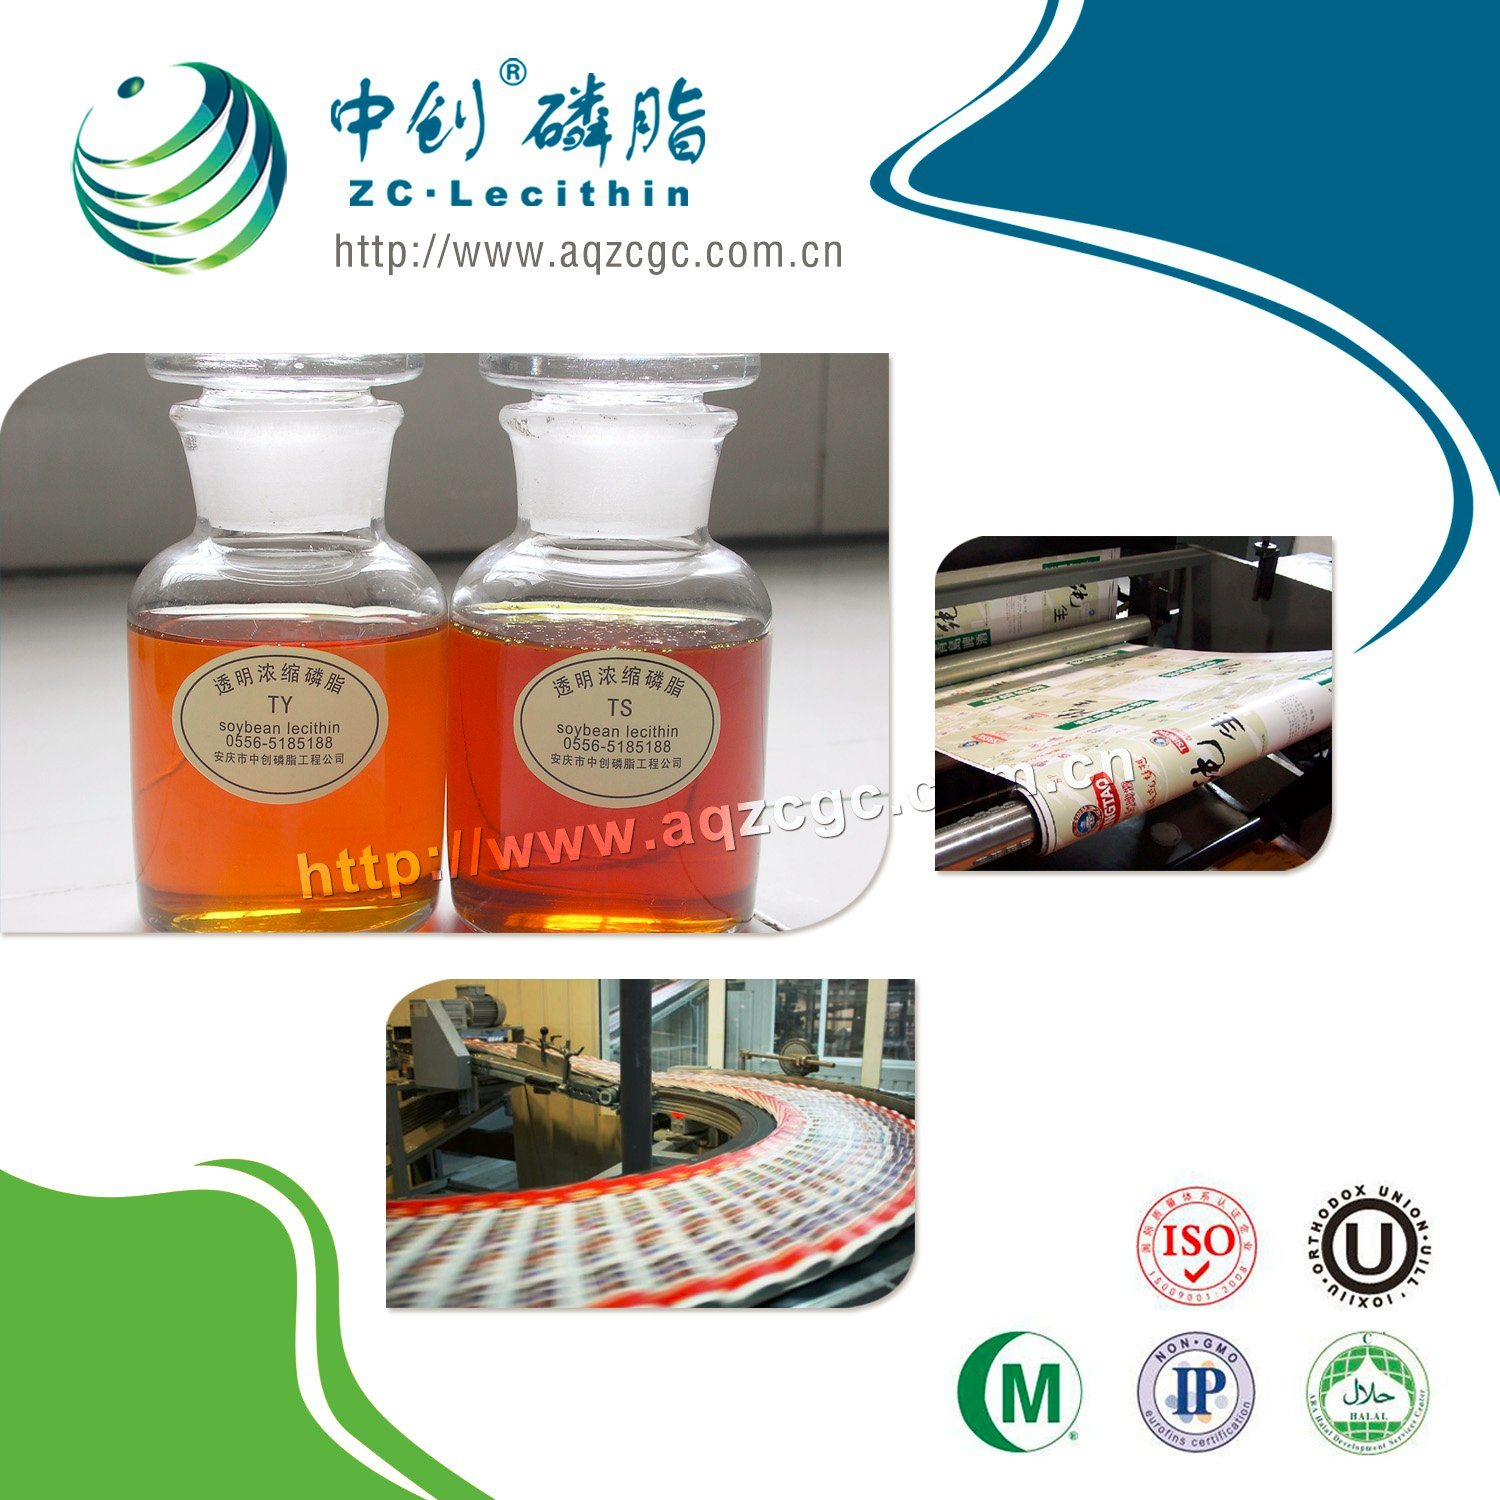 Soy Lecithin Manufacturers/Factory -Industry Grade Soy Lecithin Liquid